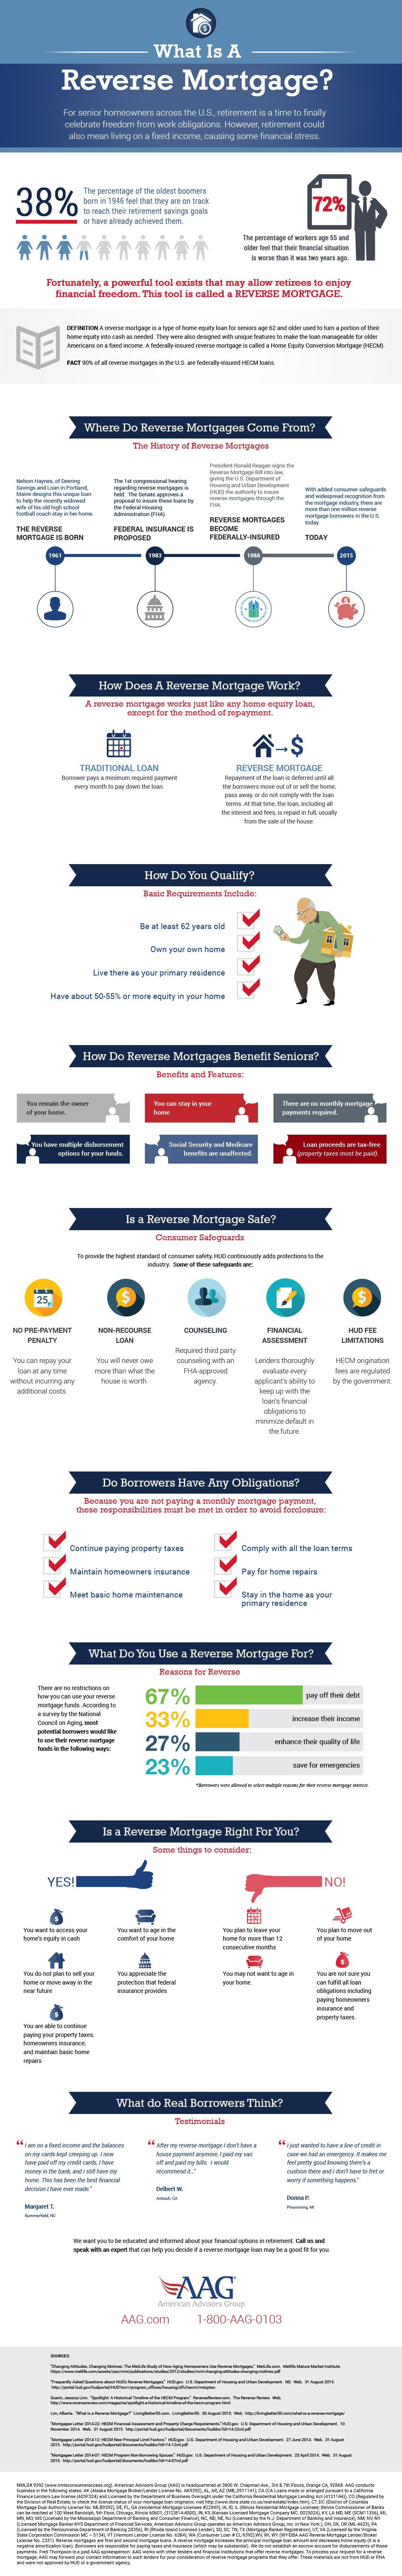 Reverse Mortgage Mortgage Infographic Reverse Mortgage